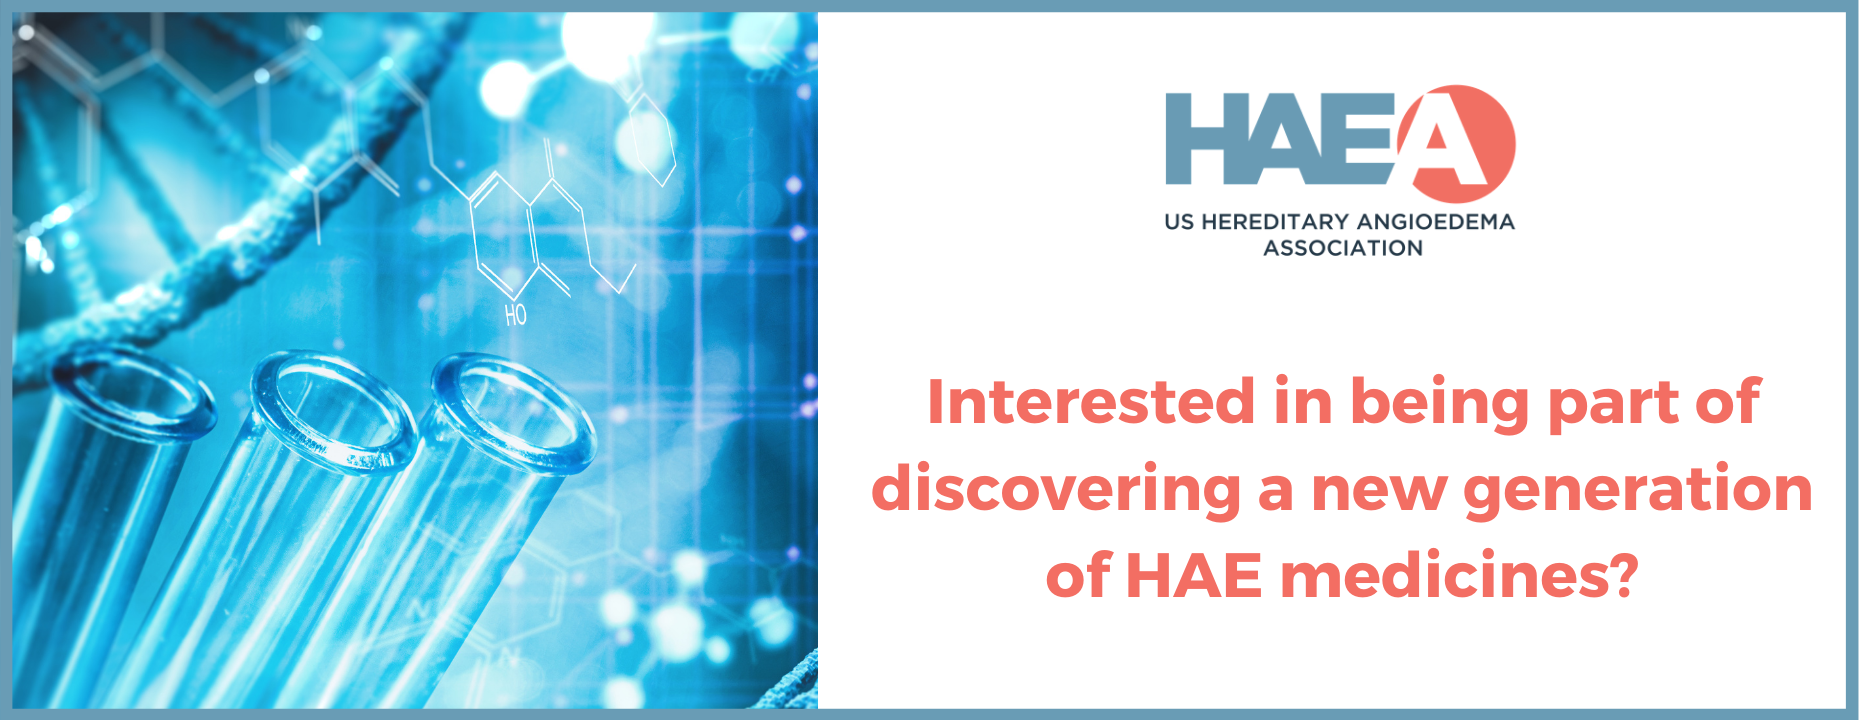 Interested in being part of discovering a new generation of HAE medicines? Then join the US HAEA Scientific Registry!